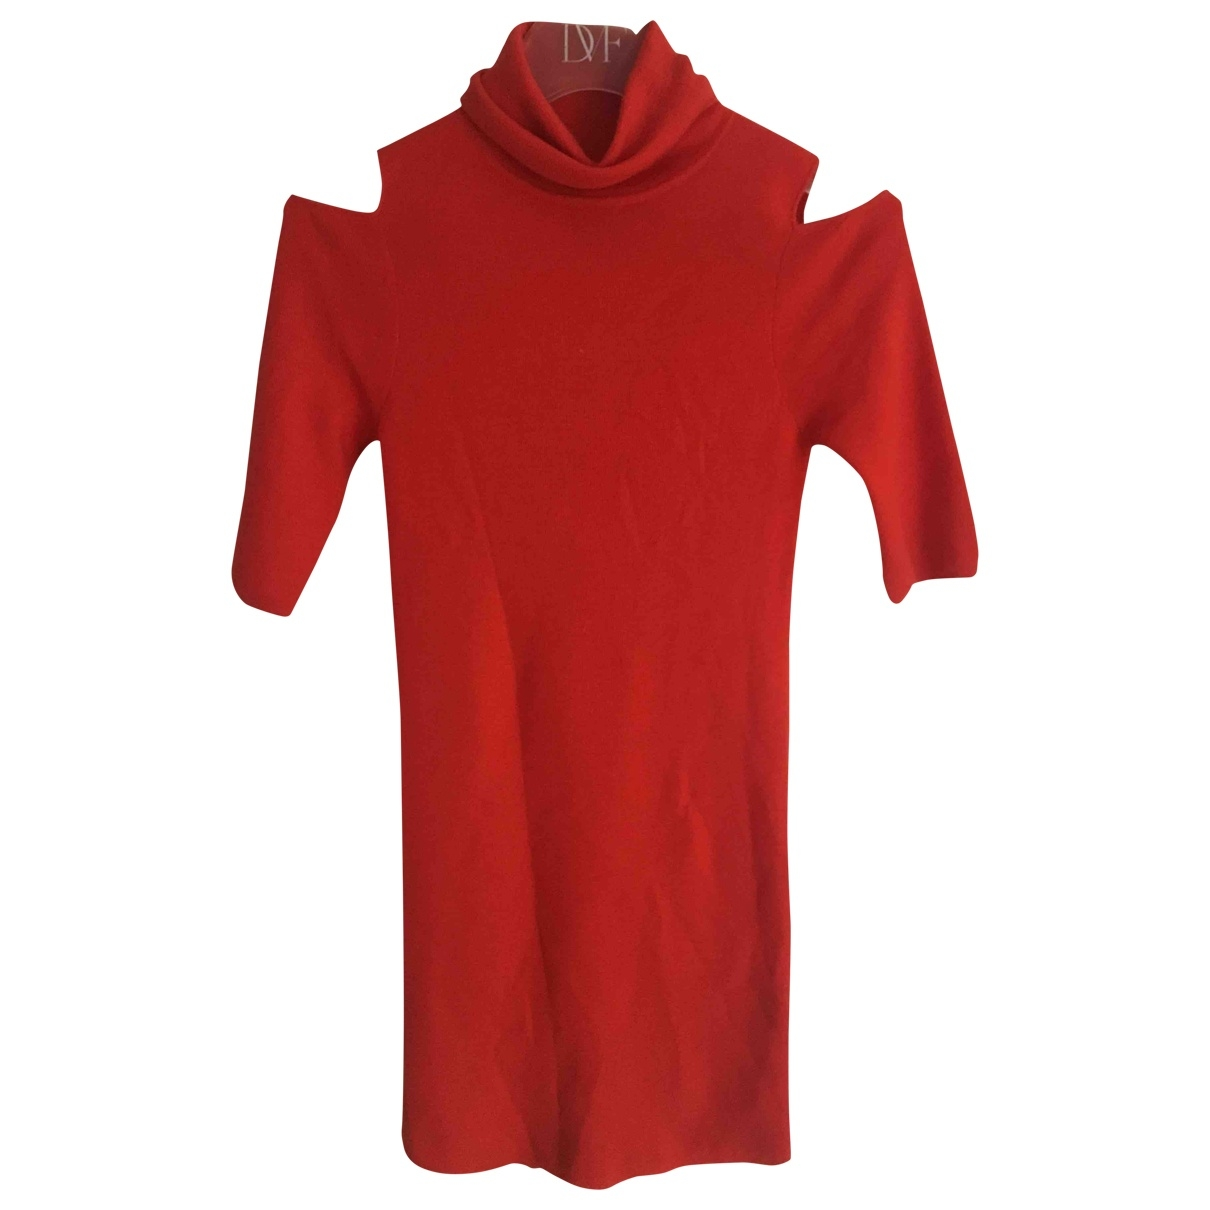 Zoe Jordan \N Red Cashmere  top for Women S